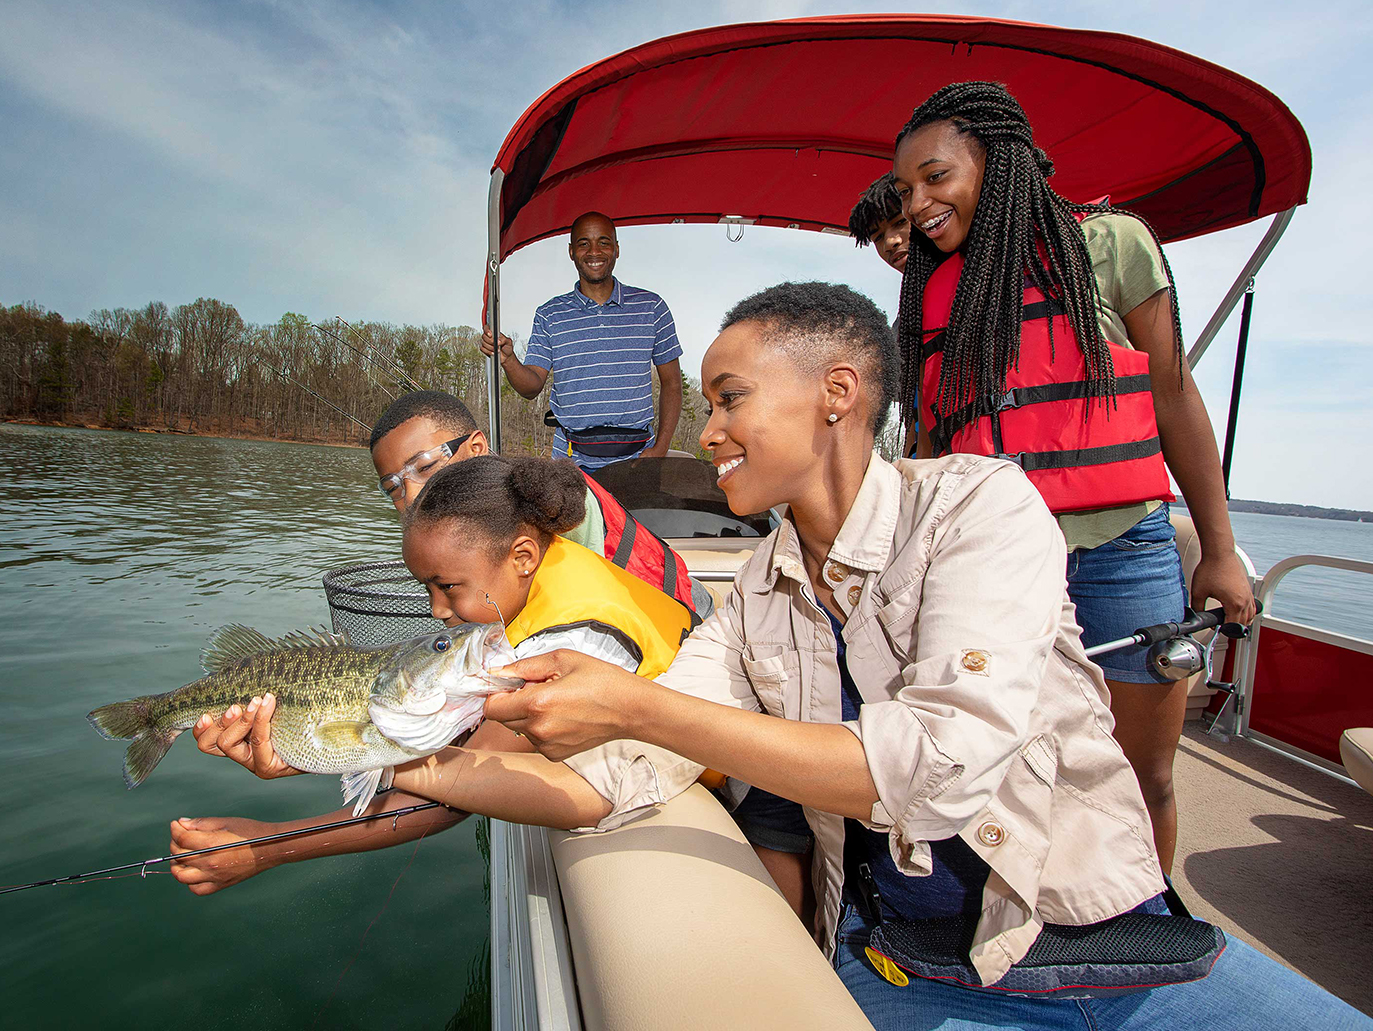 Mother And Father With Children Fishing On A Pontoon Boat